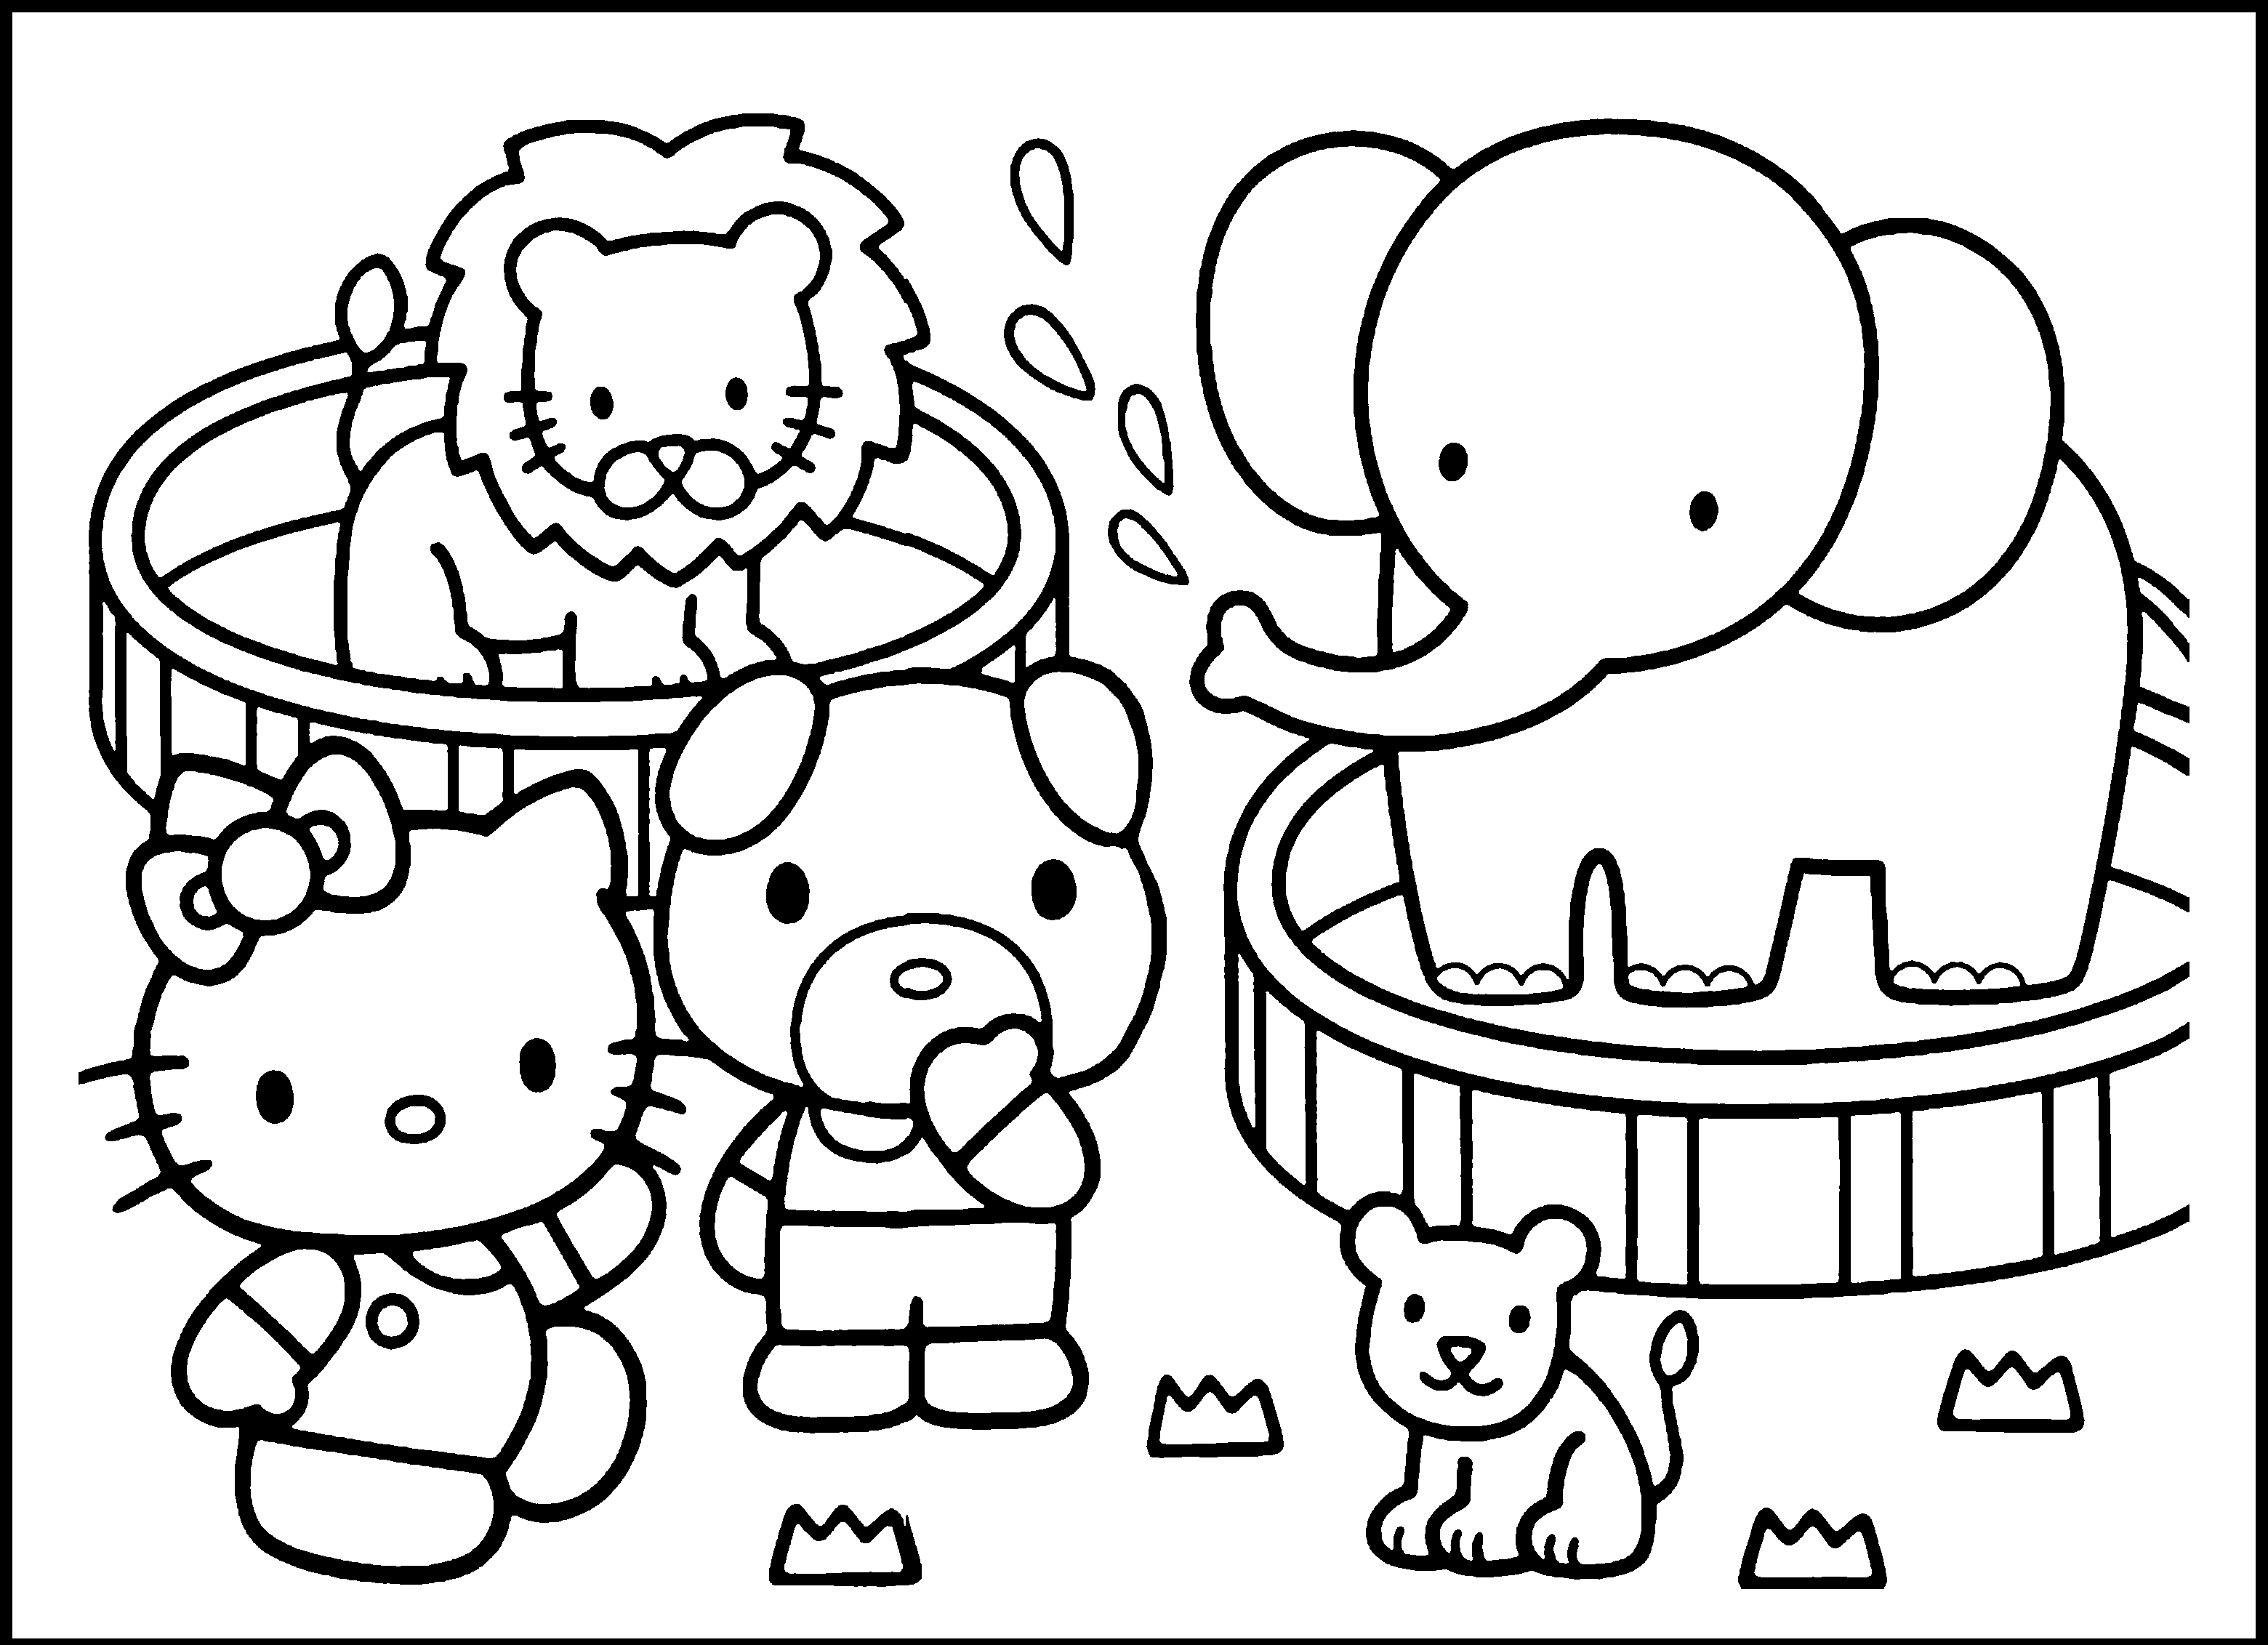 coloring zoo animals clipart black and white clip art baby animals tiger cub bw abcteach zoo white black clipart and coloring animals